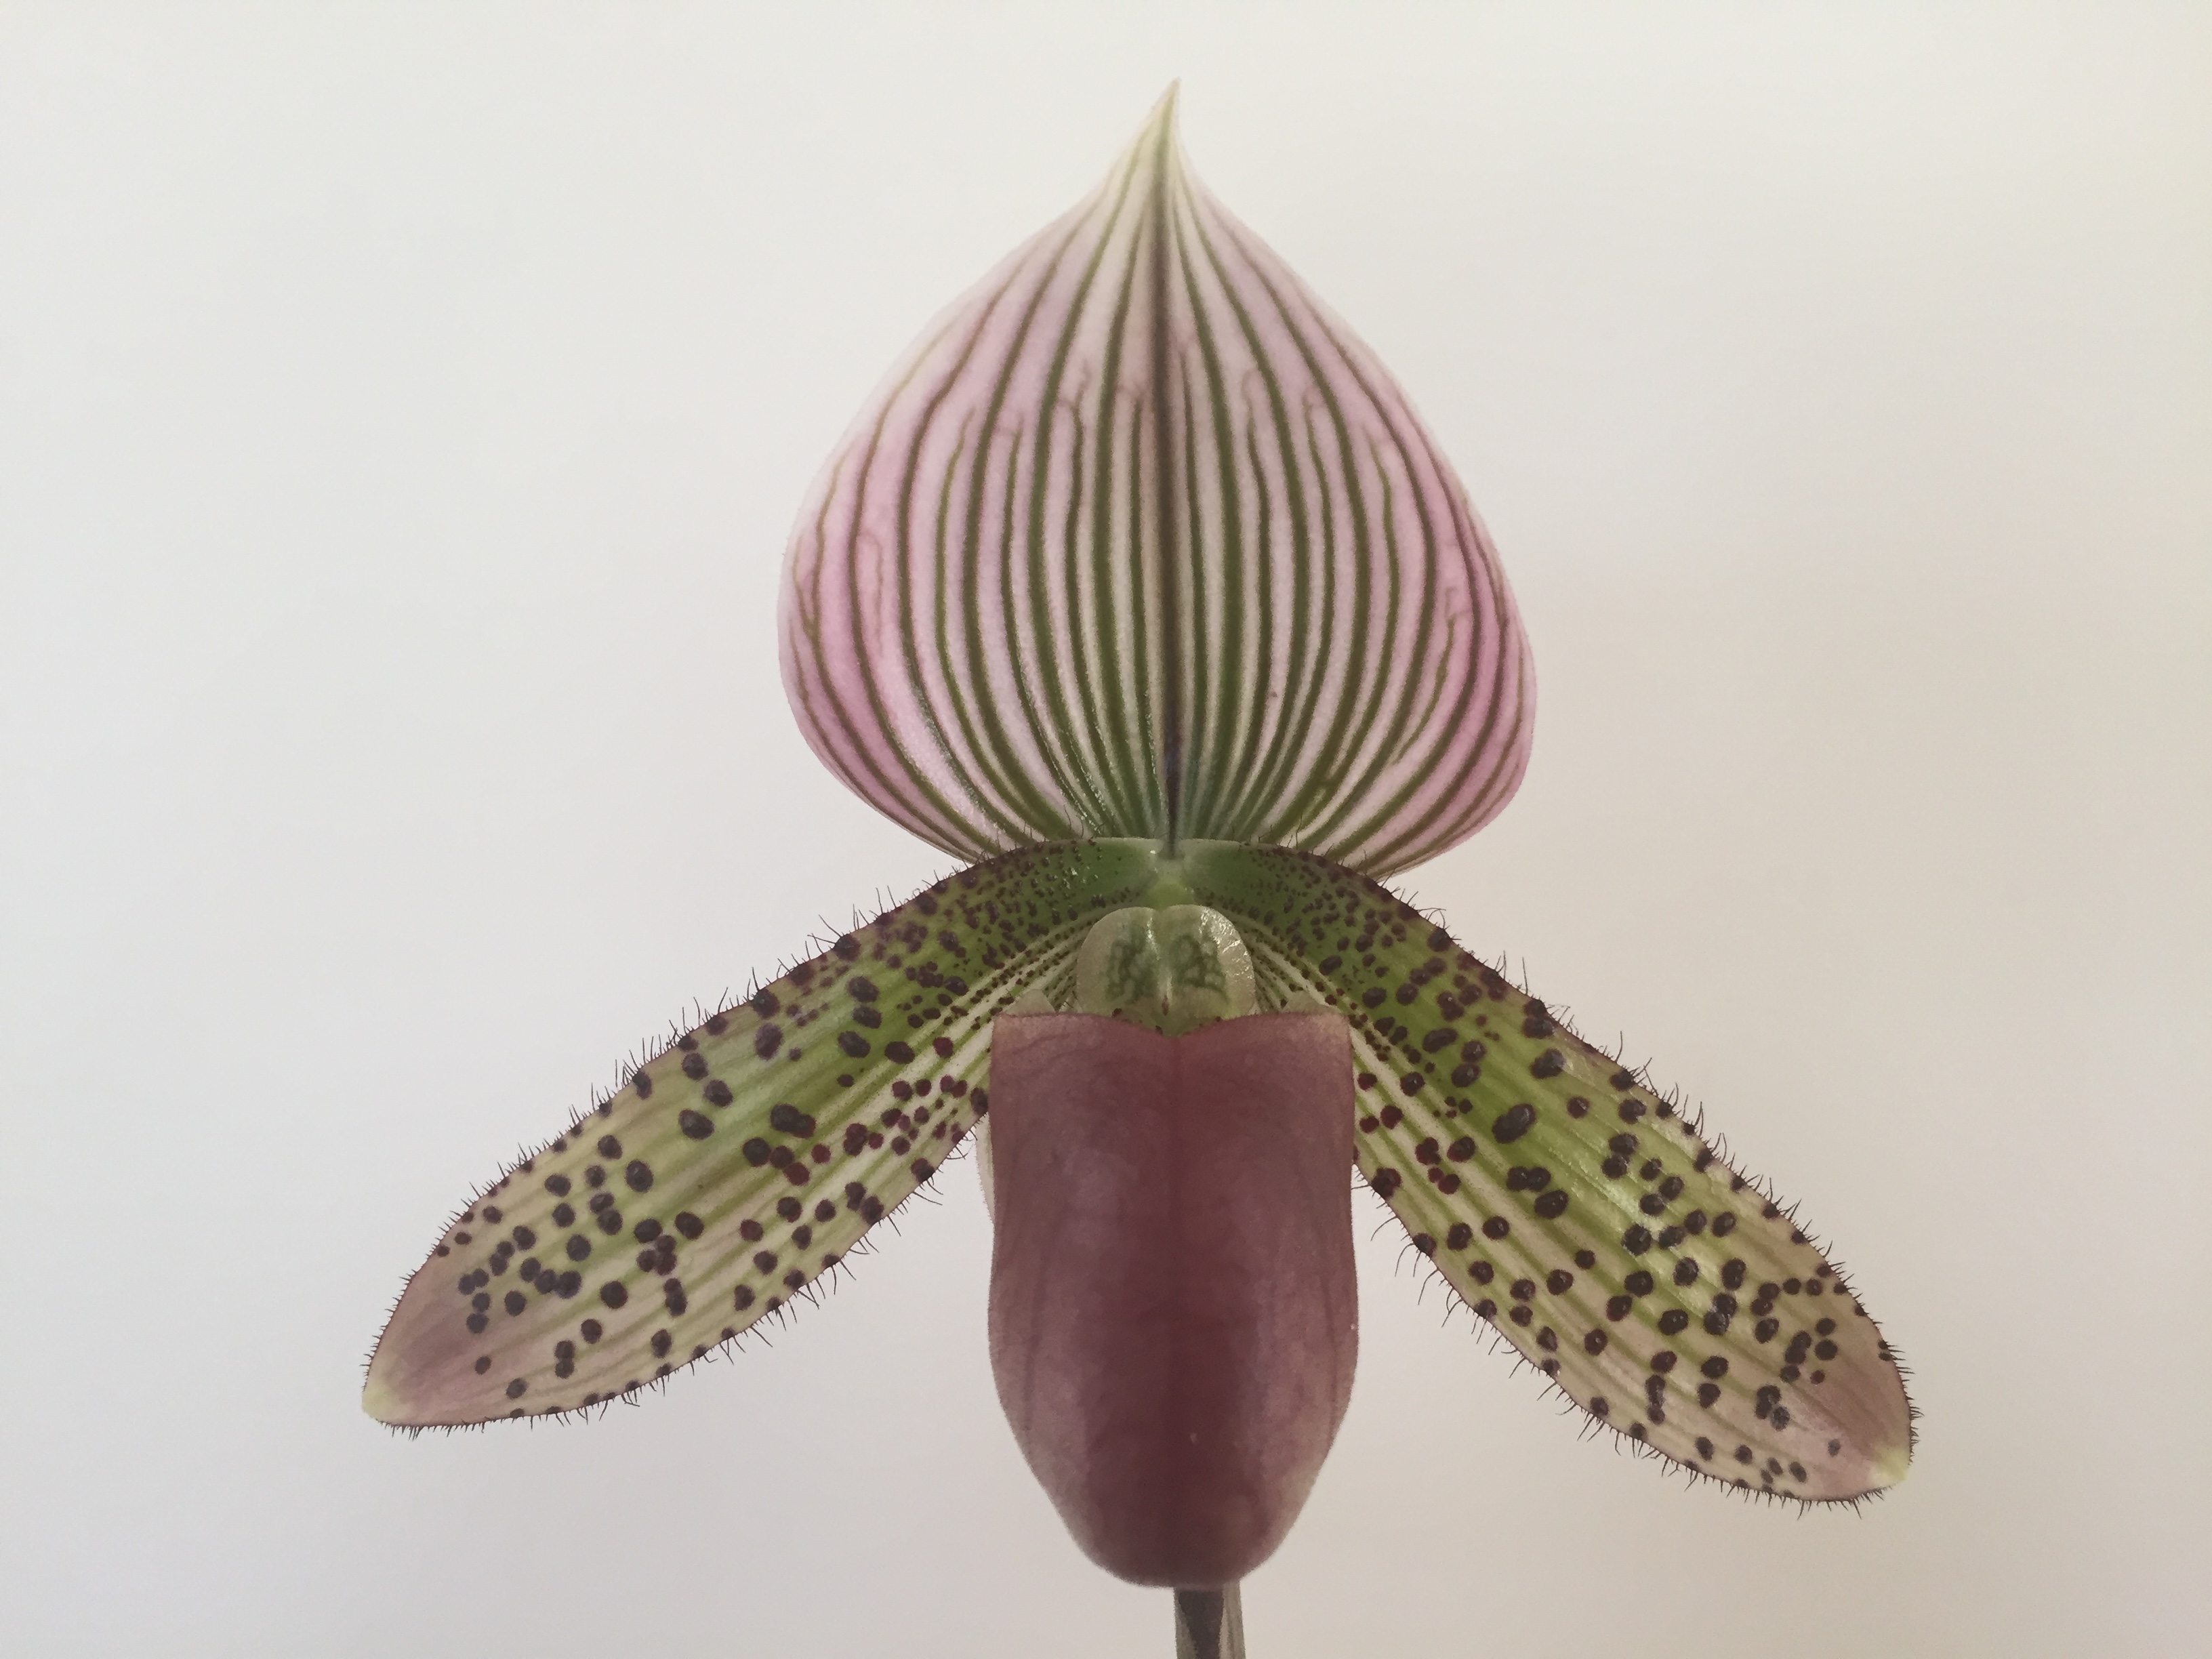 2016-032 Paph. Bobby Colina 'Ging' AM 83.26 Owner A Booth Photo T Brown OCNZ